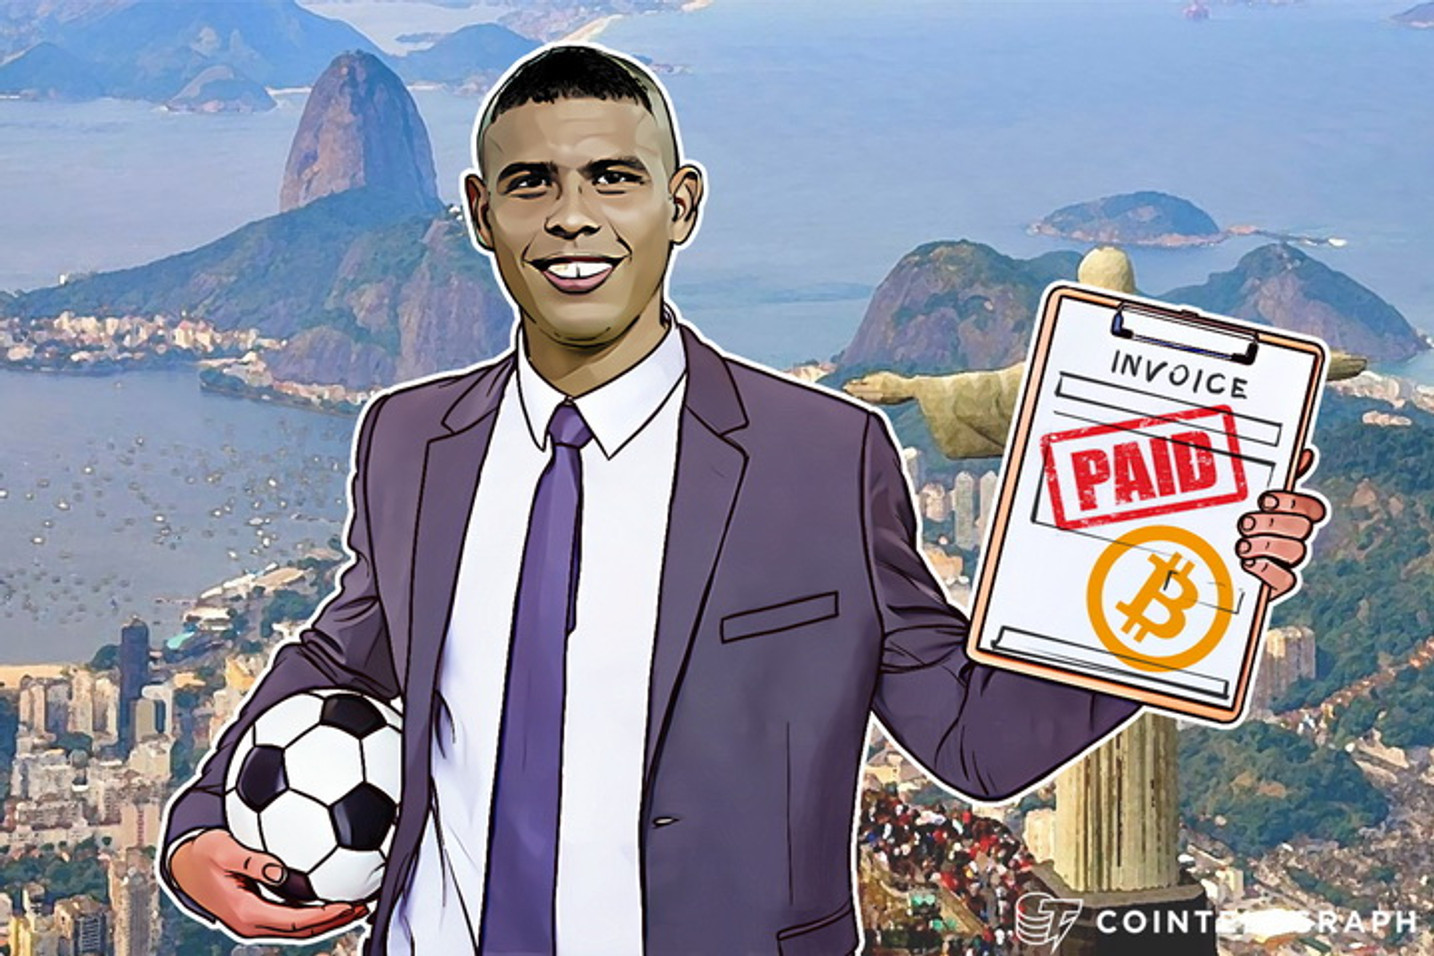 Bitcoin Payroll Bitwage Offers Direct Invoicing In Brazil